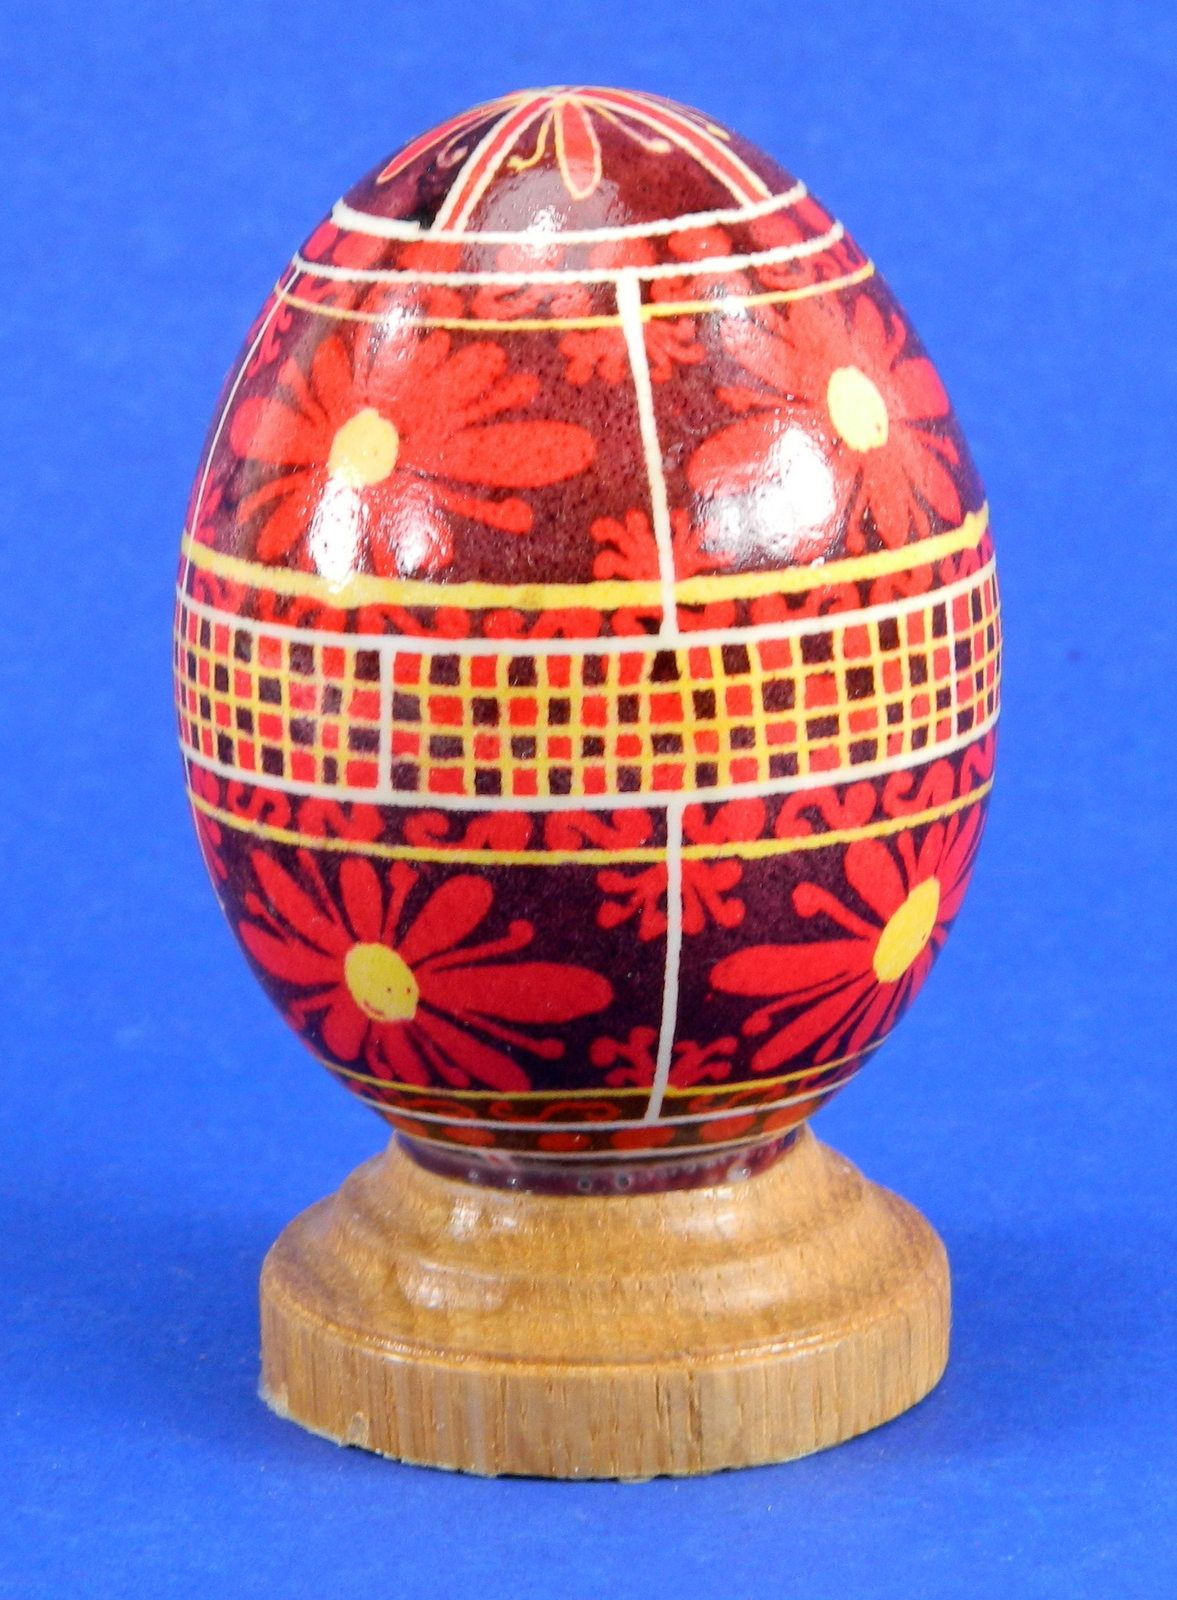 Polish Pysanky Egg Hand Painted Decorated Vintage Easter Blown Out Chicken Egg 20479 by JacksonsMarket on Etsy